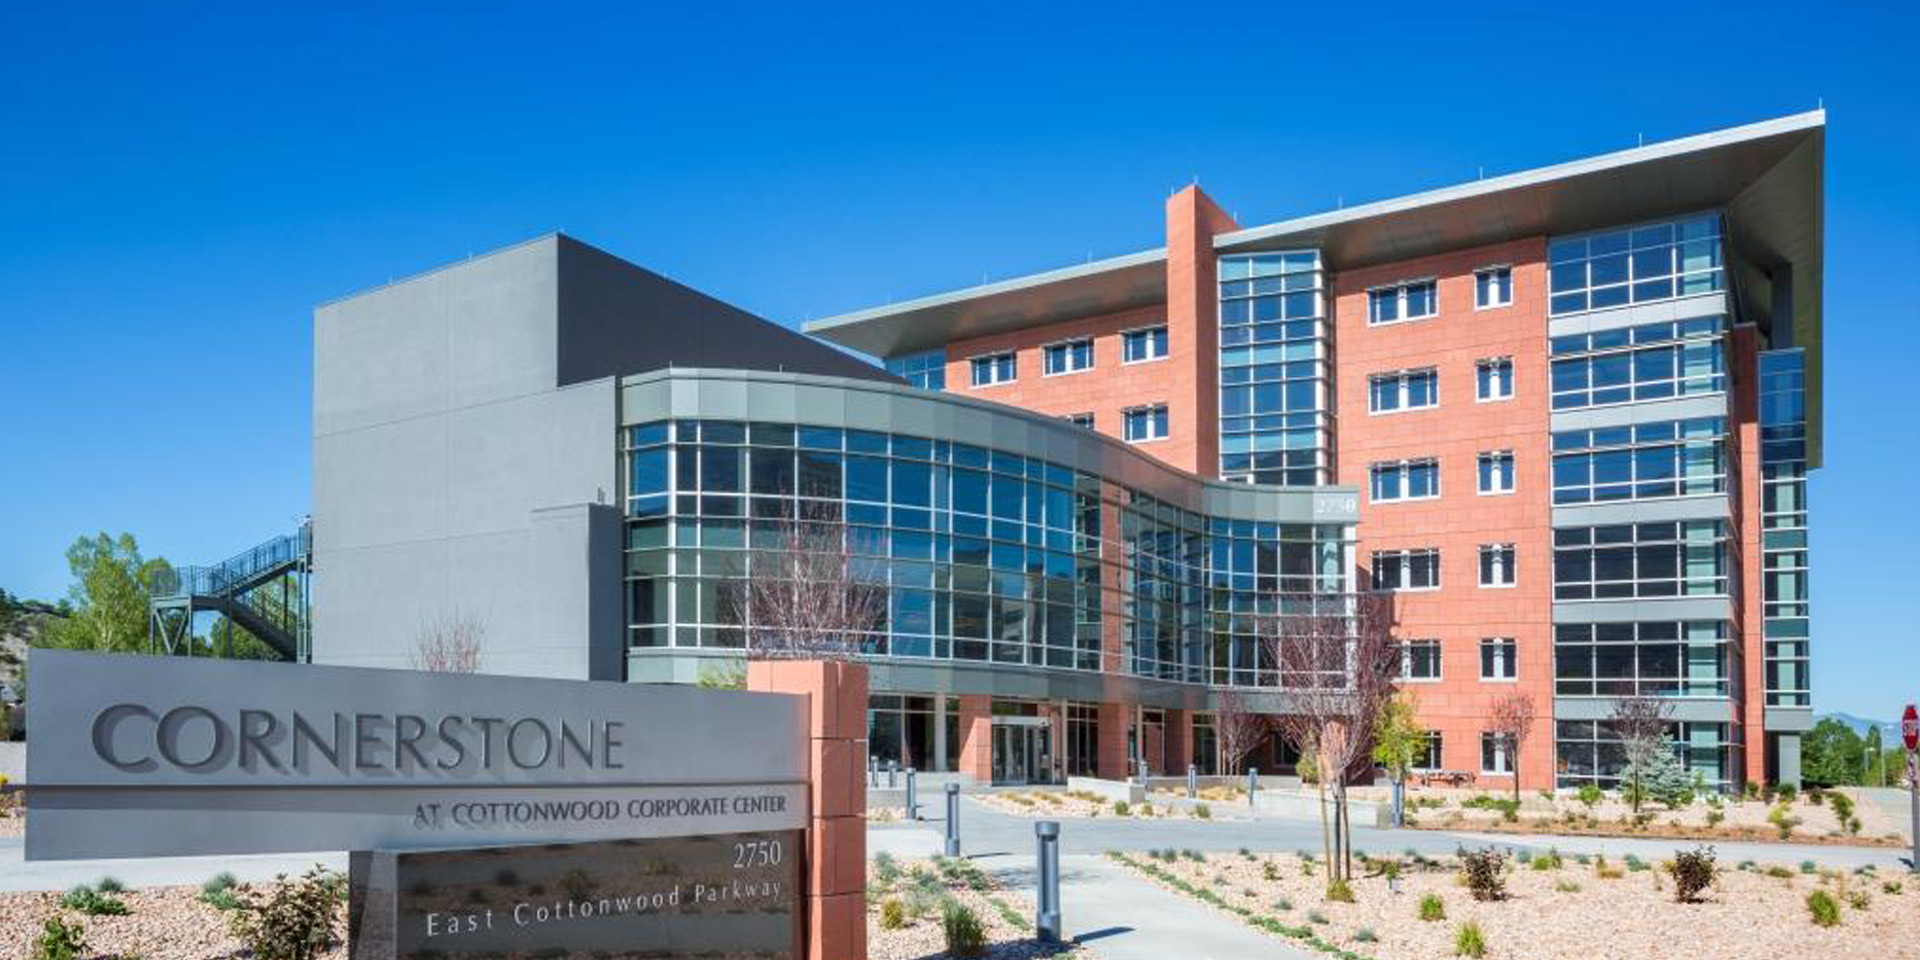 Cornerstone at Cottonwood Corporate Center | Solarban® z75 Glass (Solarban® 70 Optiblue® Glass)